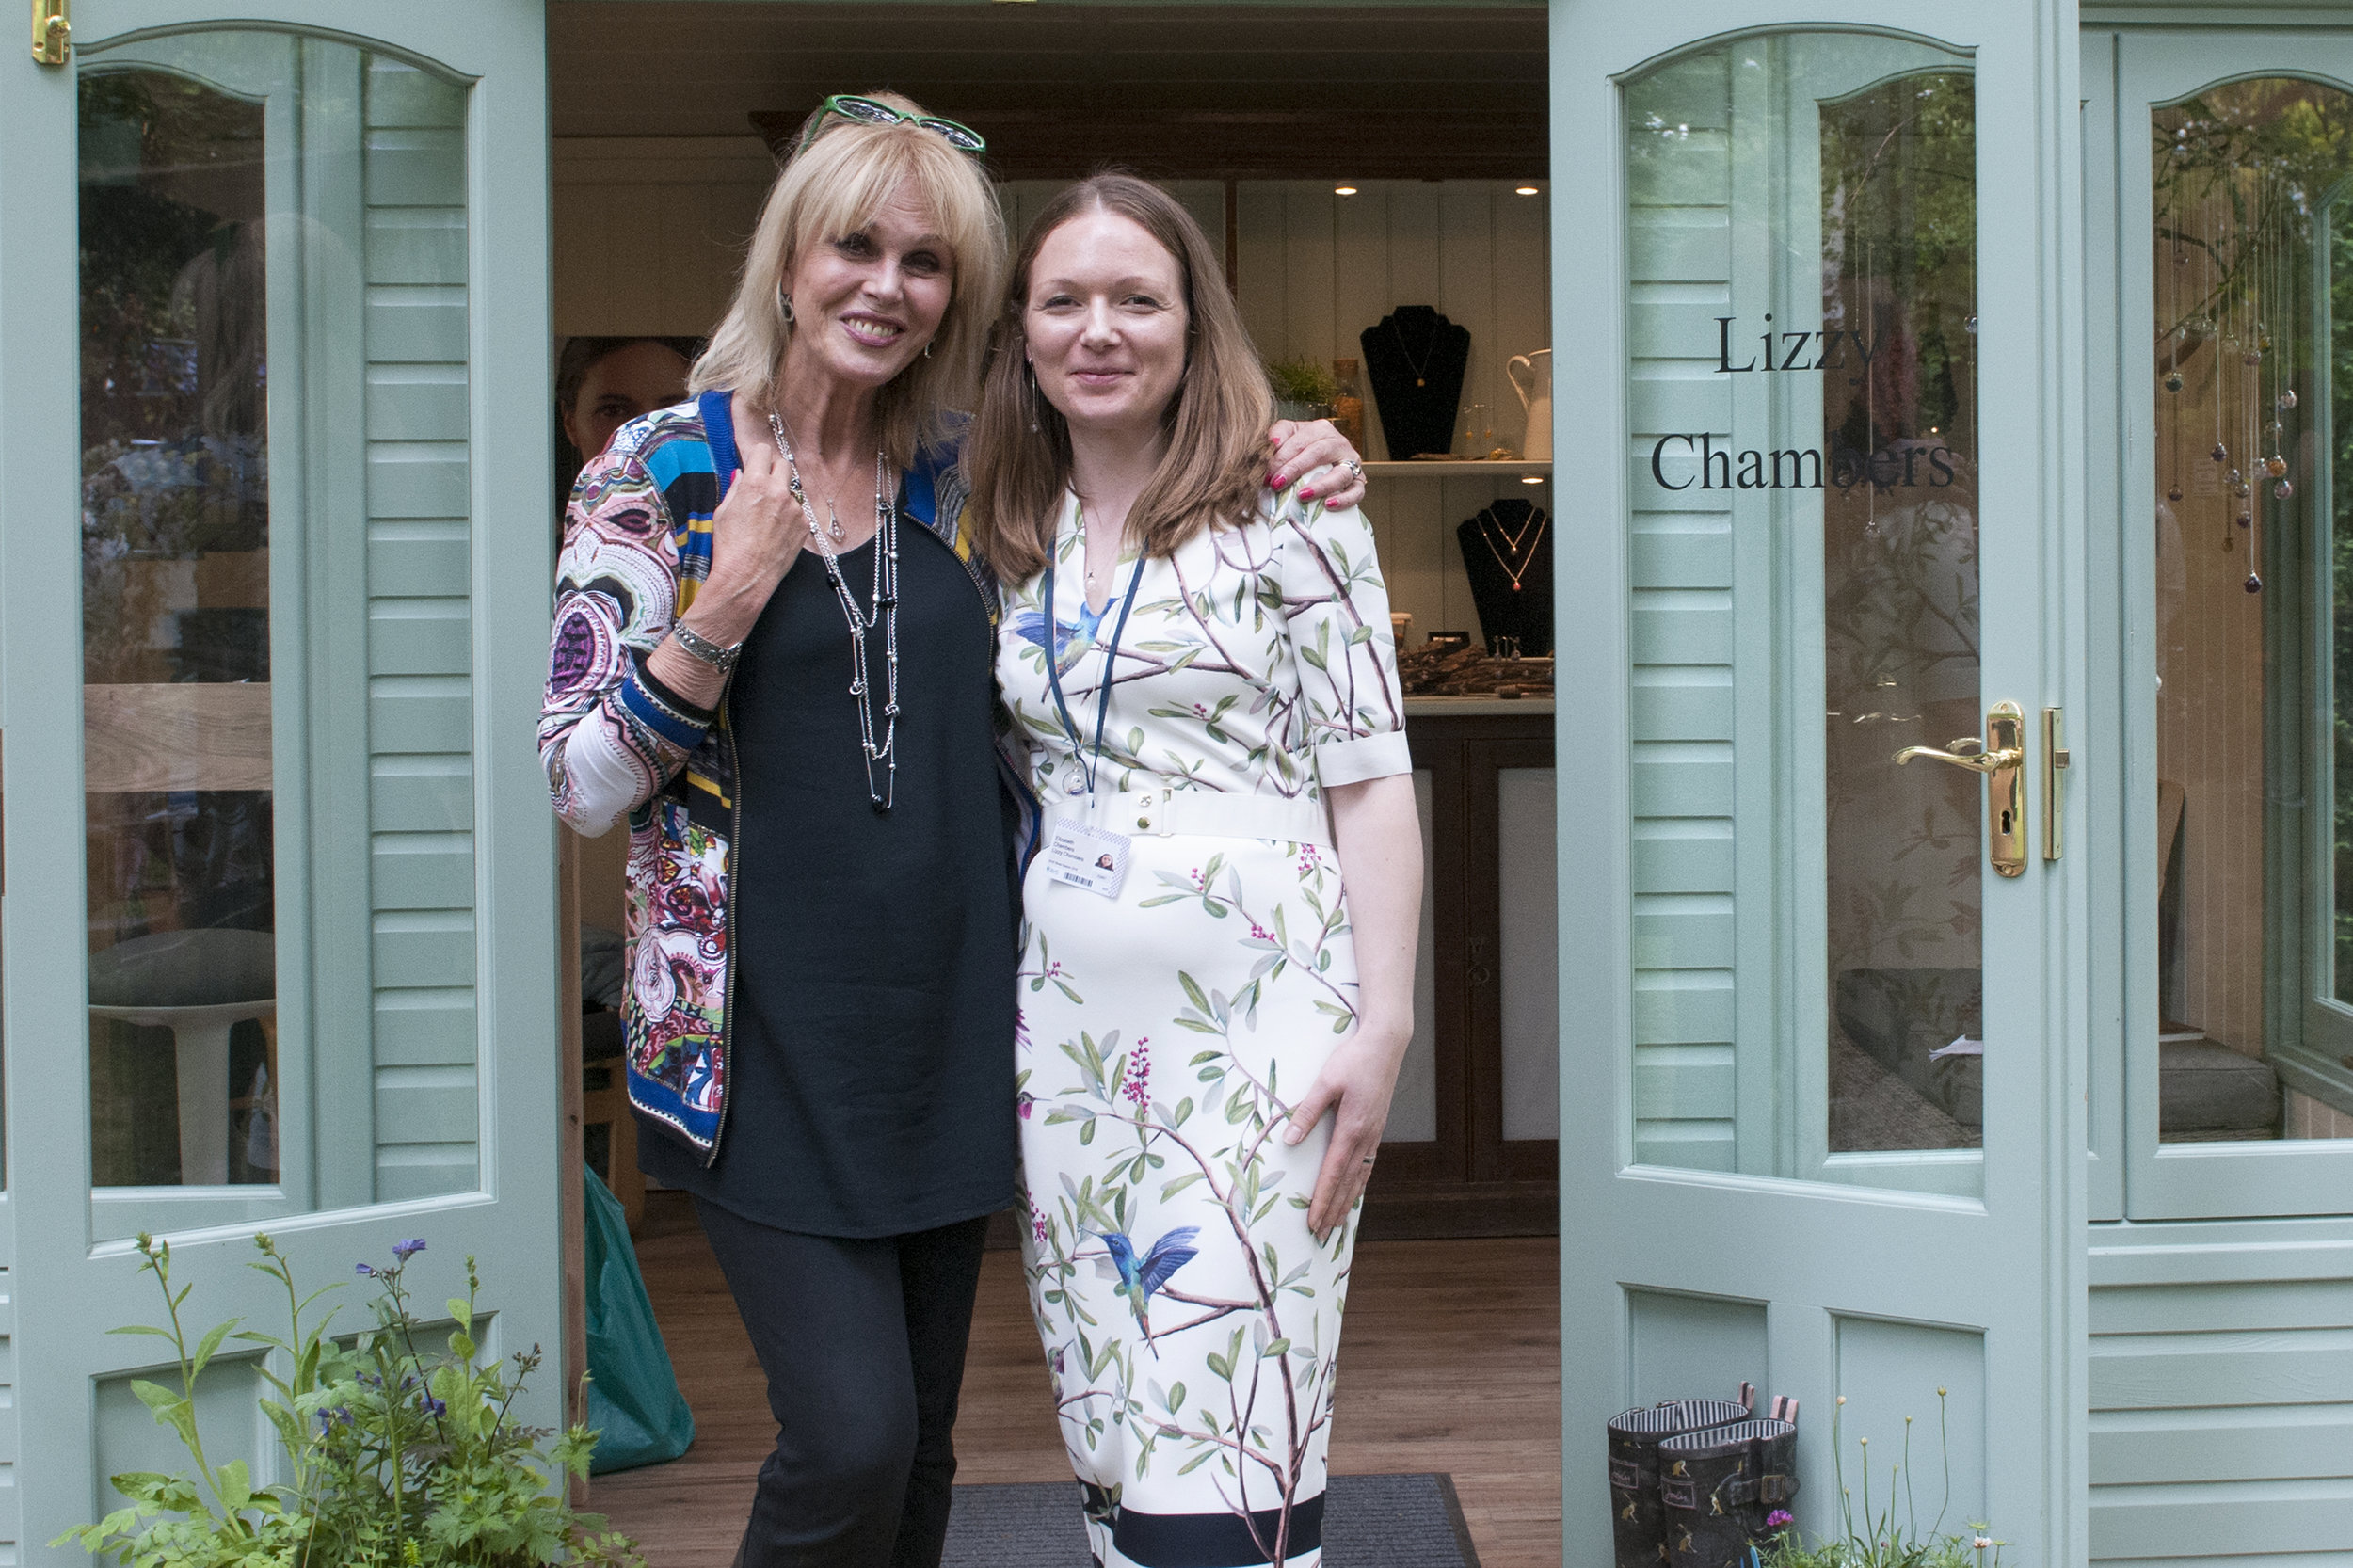 Lizzy Chambers with Joanna Lumley.jpg